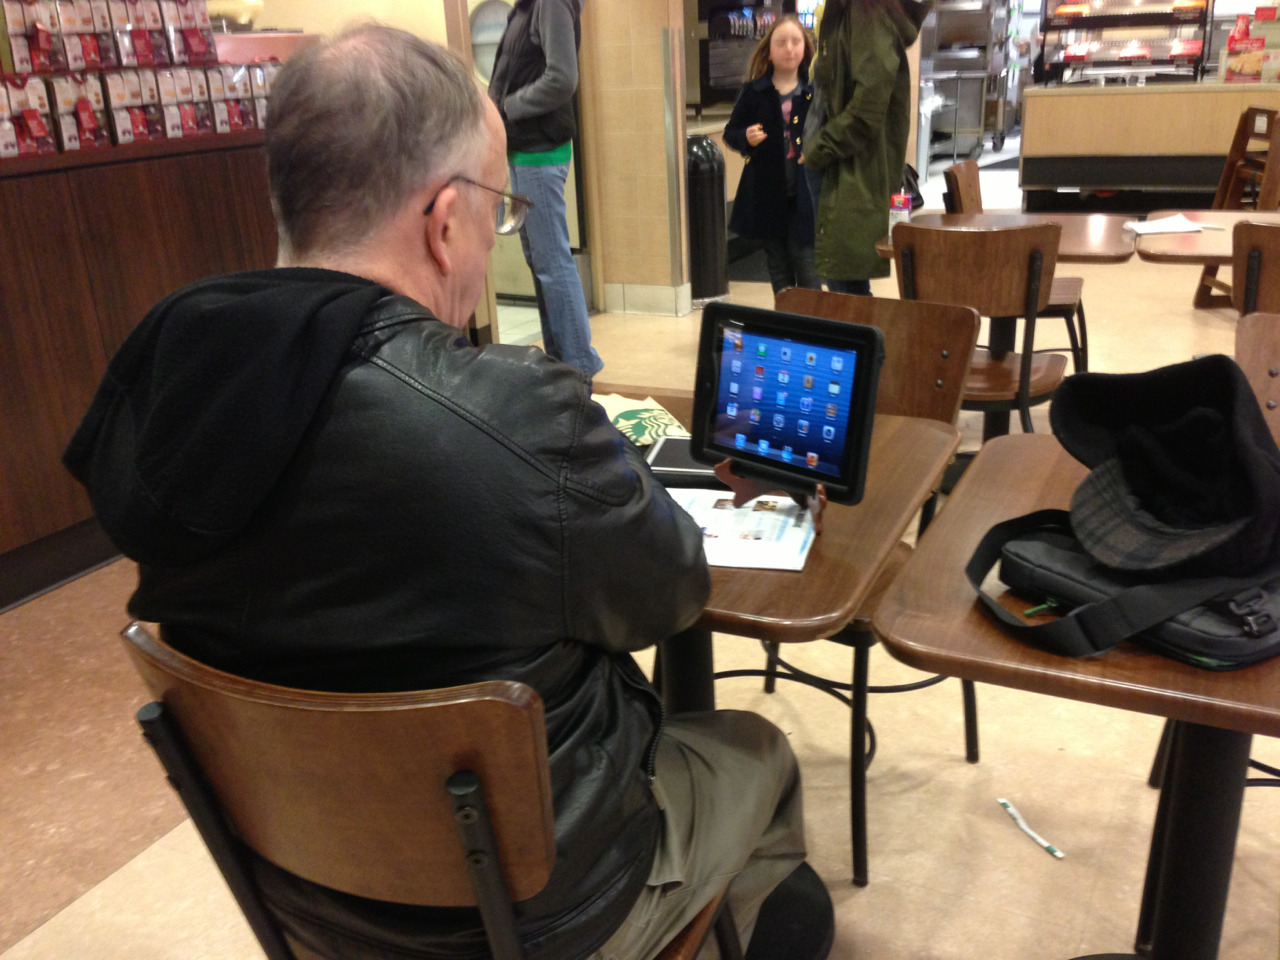 Clever: dish stand becomes iPad stand. Seen at Target Starbucks